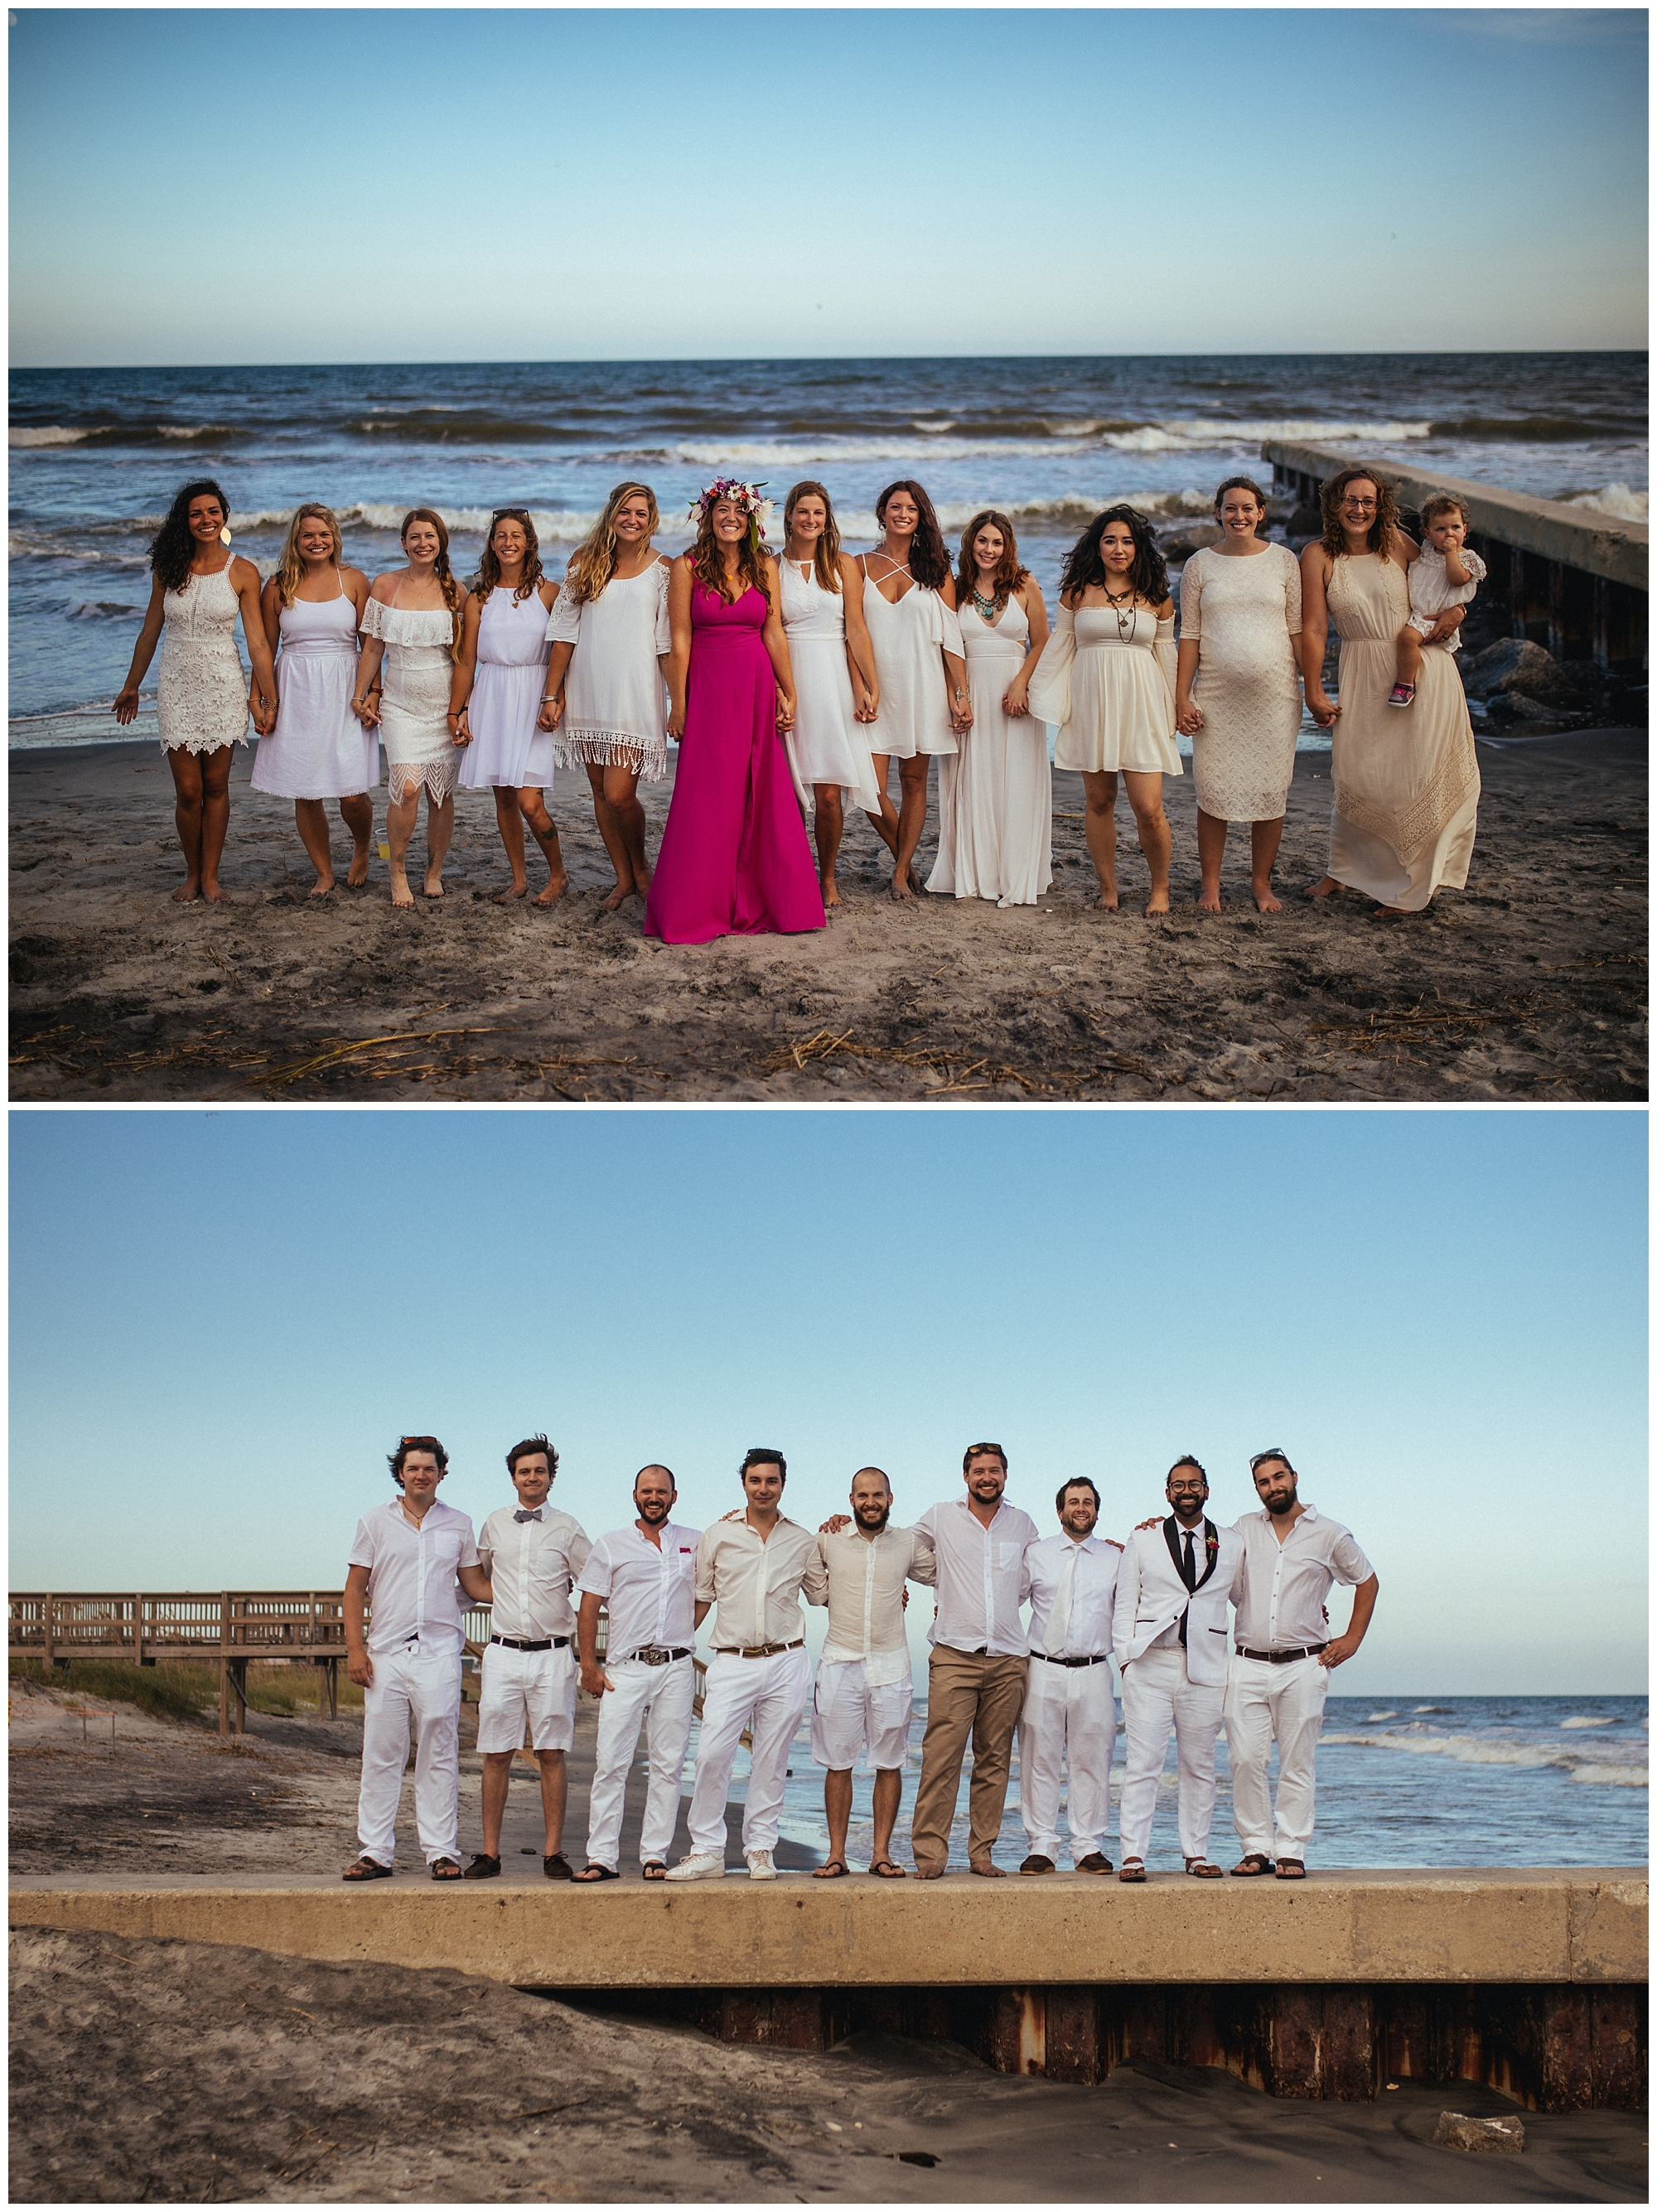 unique-beach-wedding14.jpg